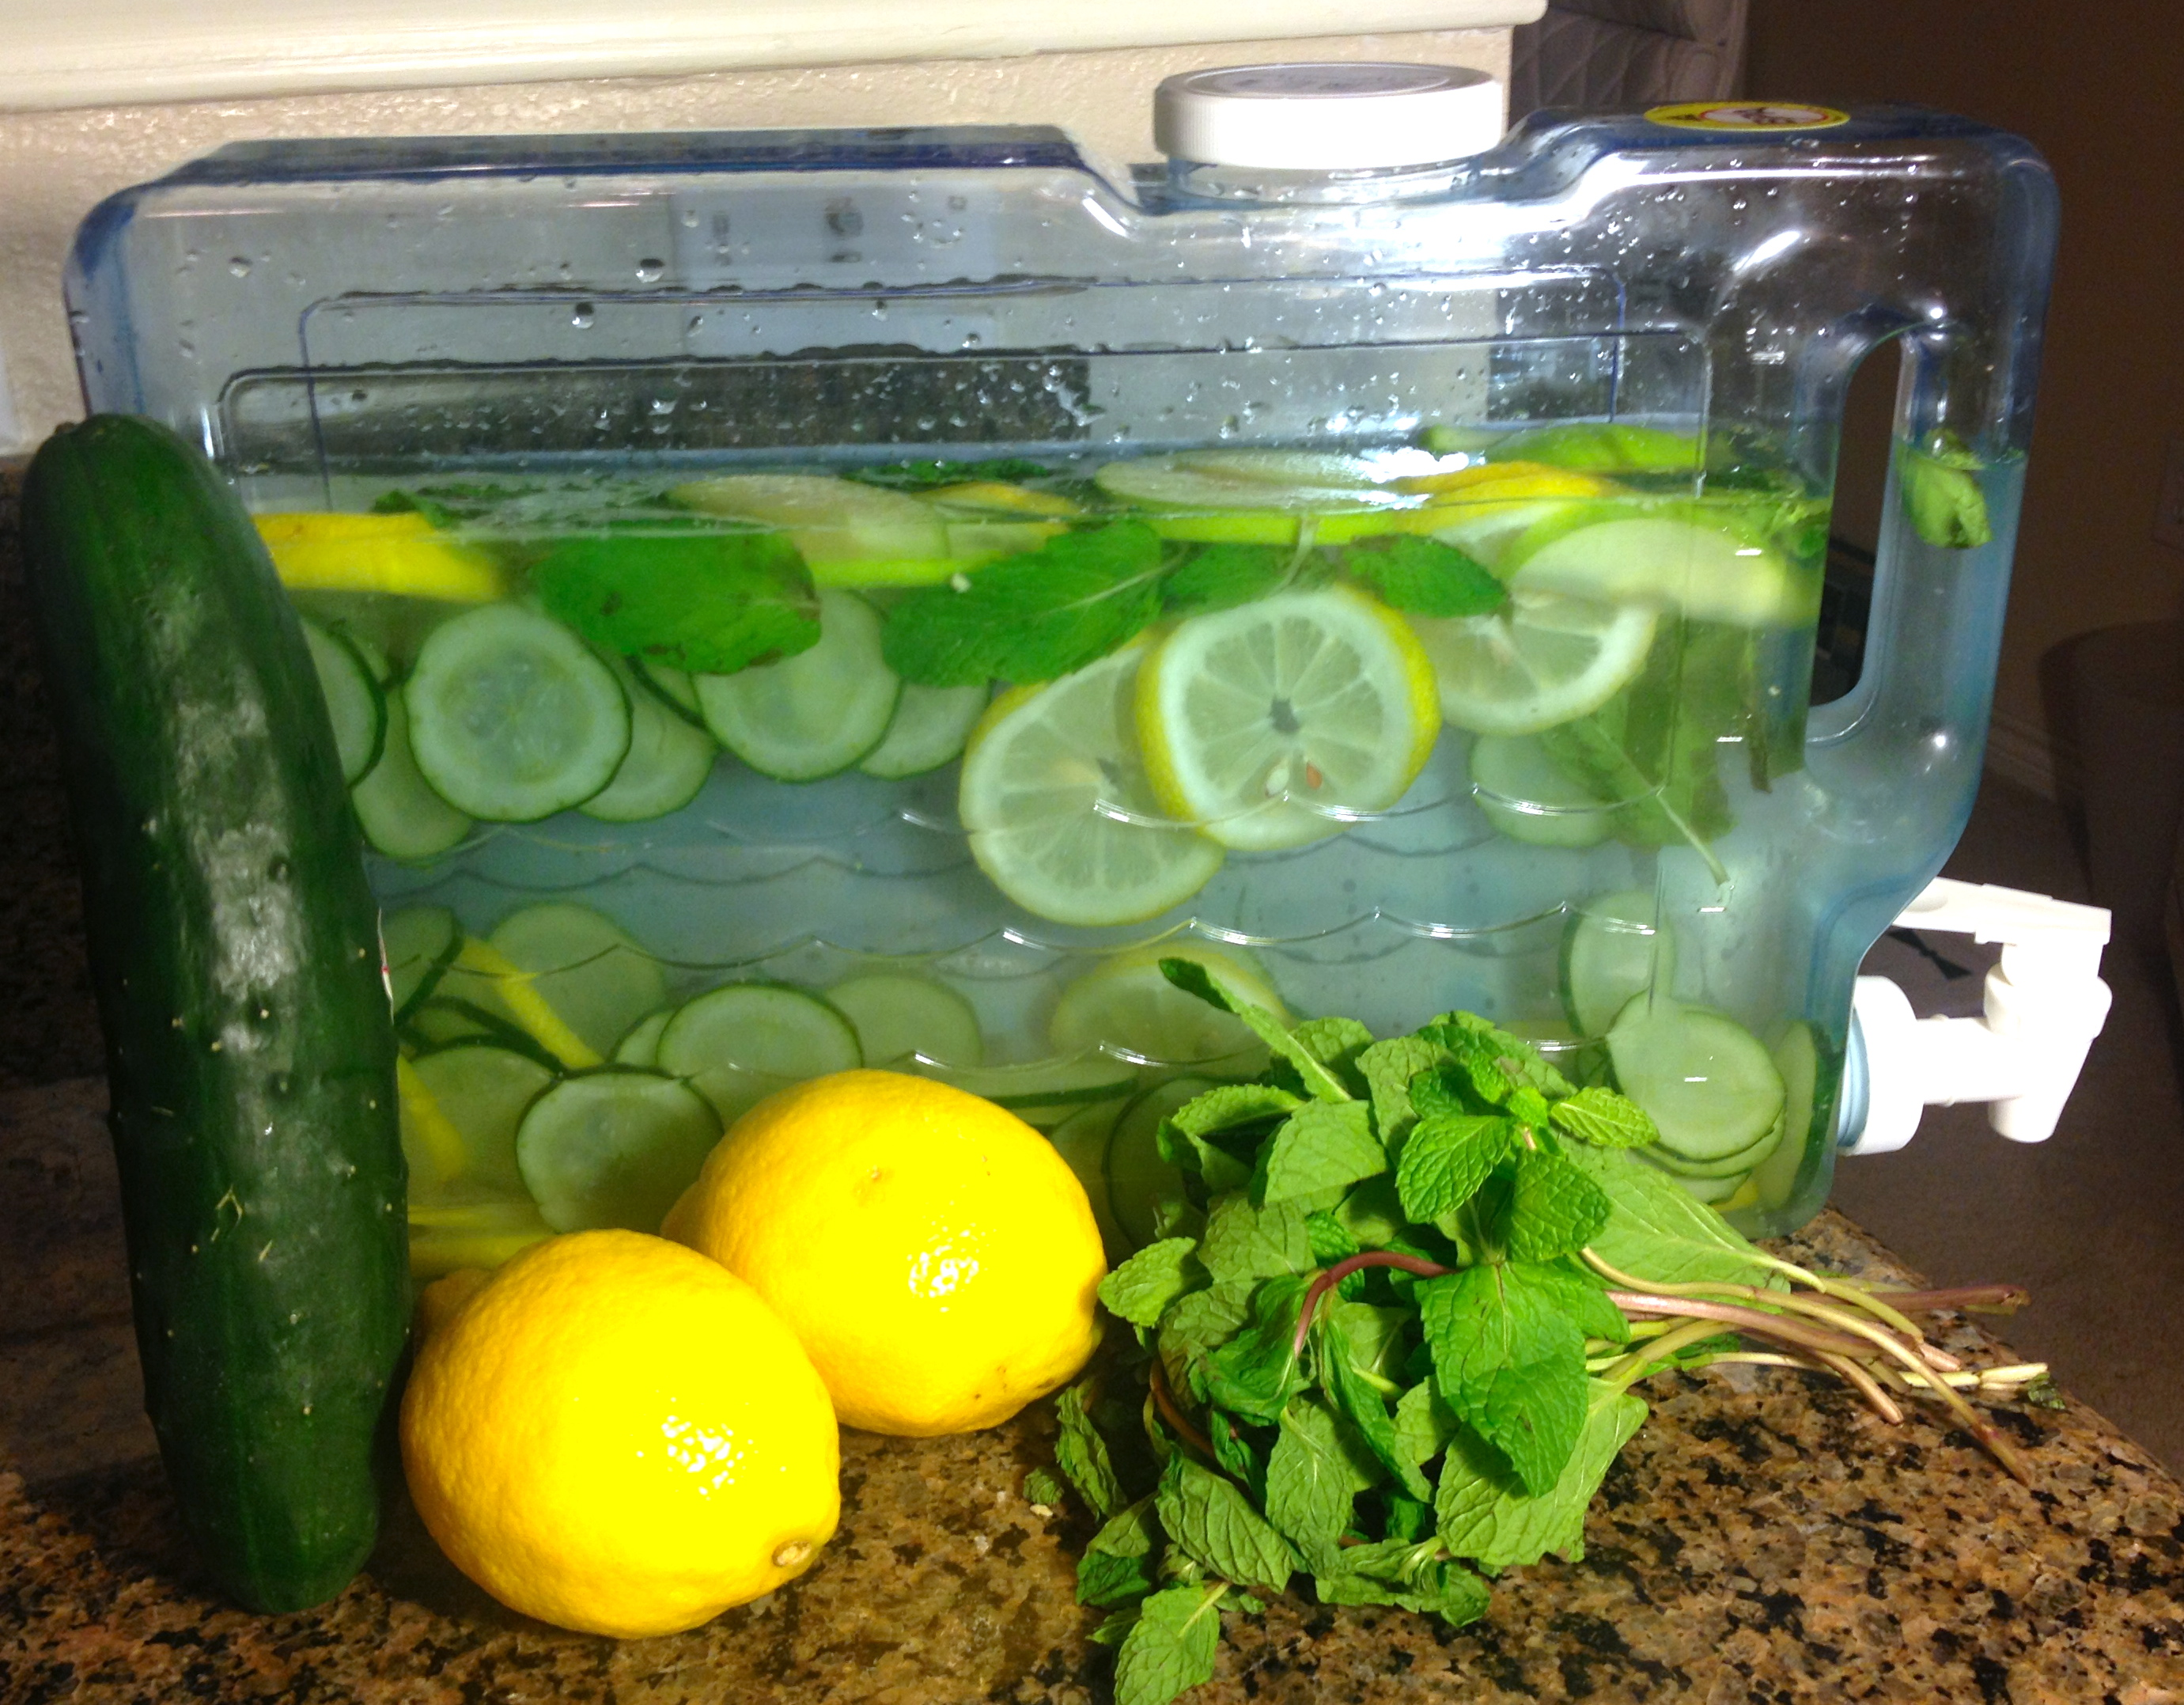 After that, mix it with the lemon juice and mint infusion. Get a liter and a half of water and mix it with the mint infusion, lemon juice, and cucumber juice. Then, add two teaspoons of grated ginger, the three lemon slices, and another mint leaf if you like.